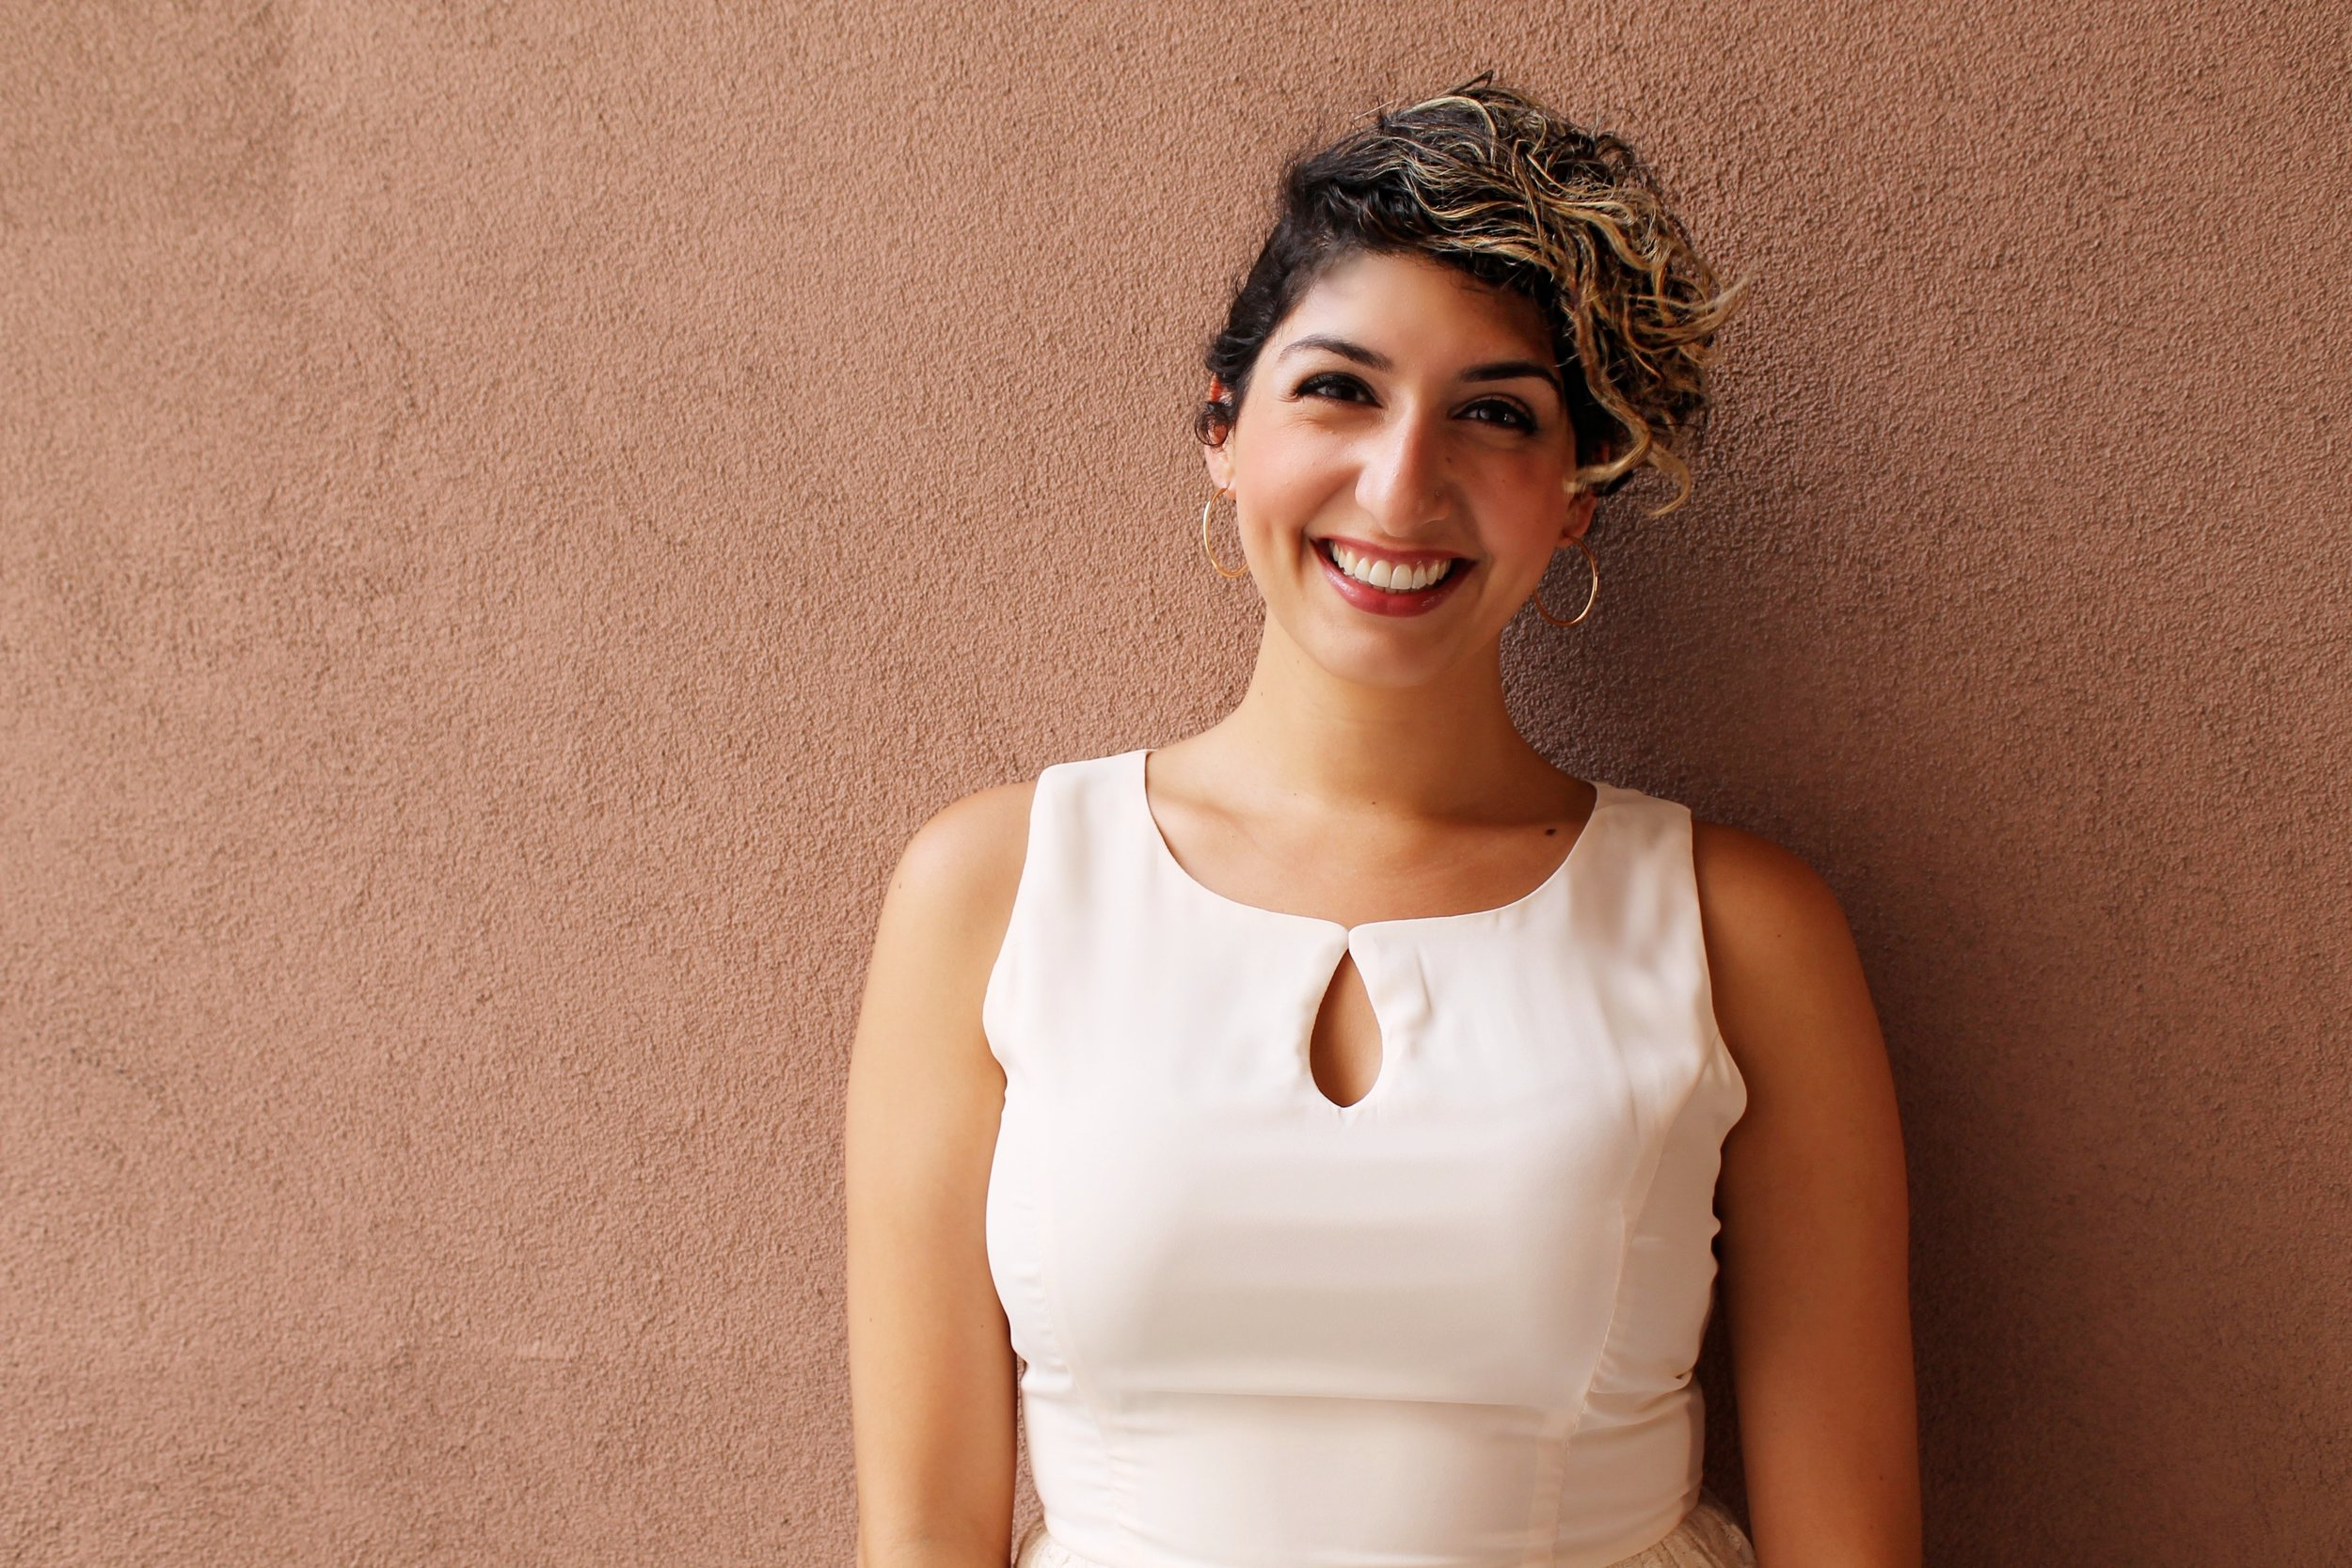 ELIZABETH ESTRADA | DOCUMENTARY LAB ASSOCIATE